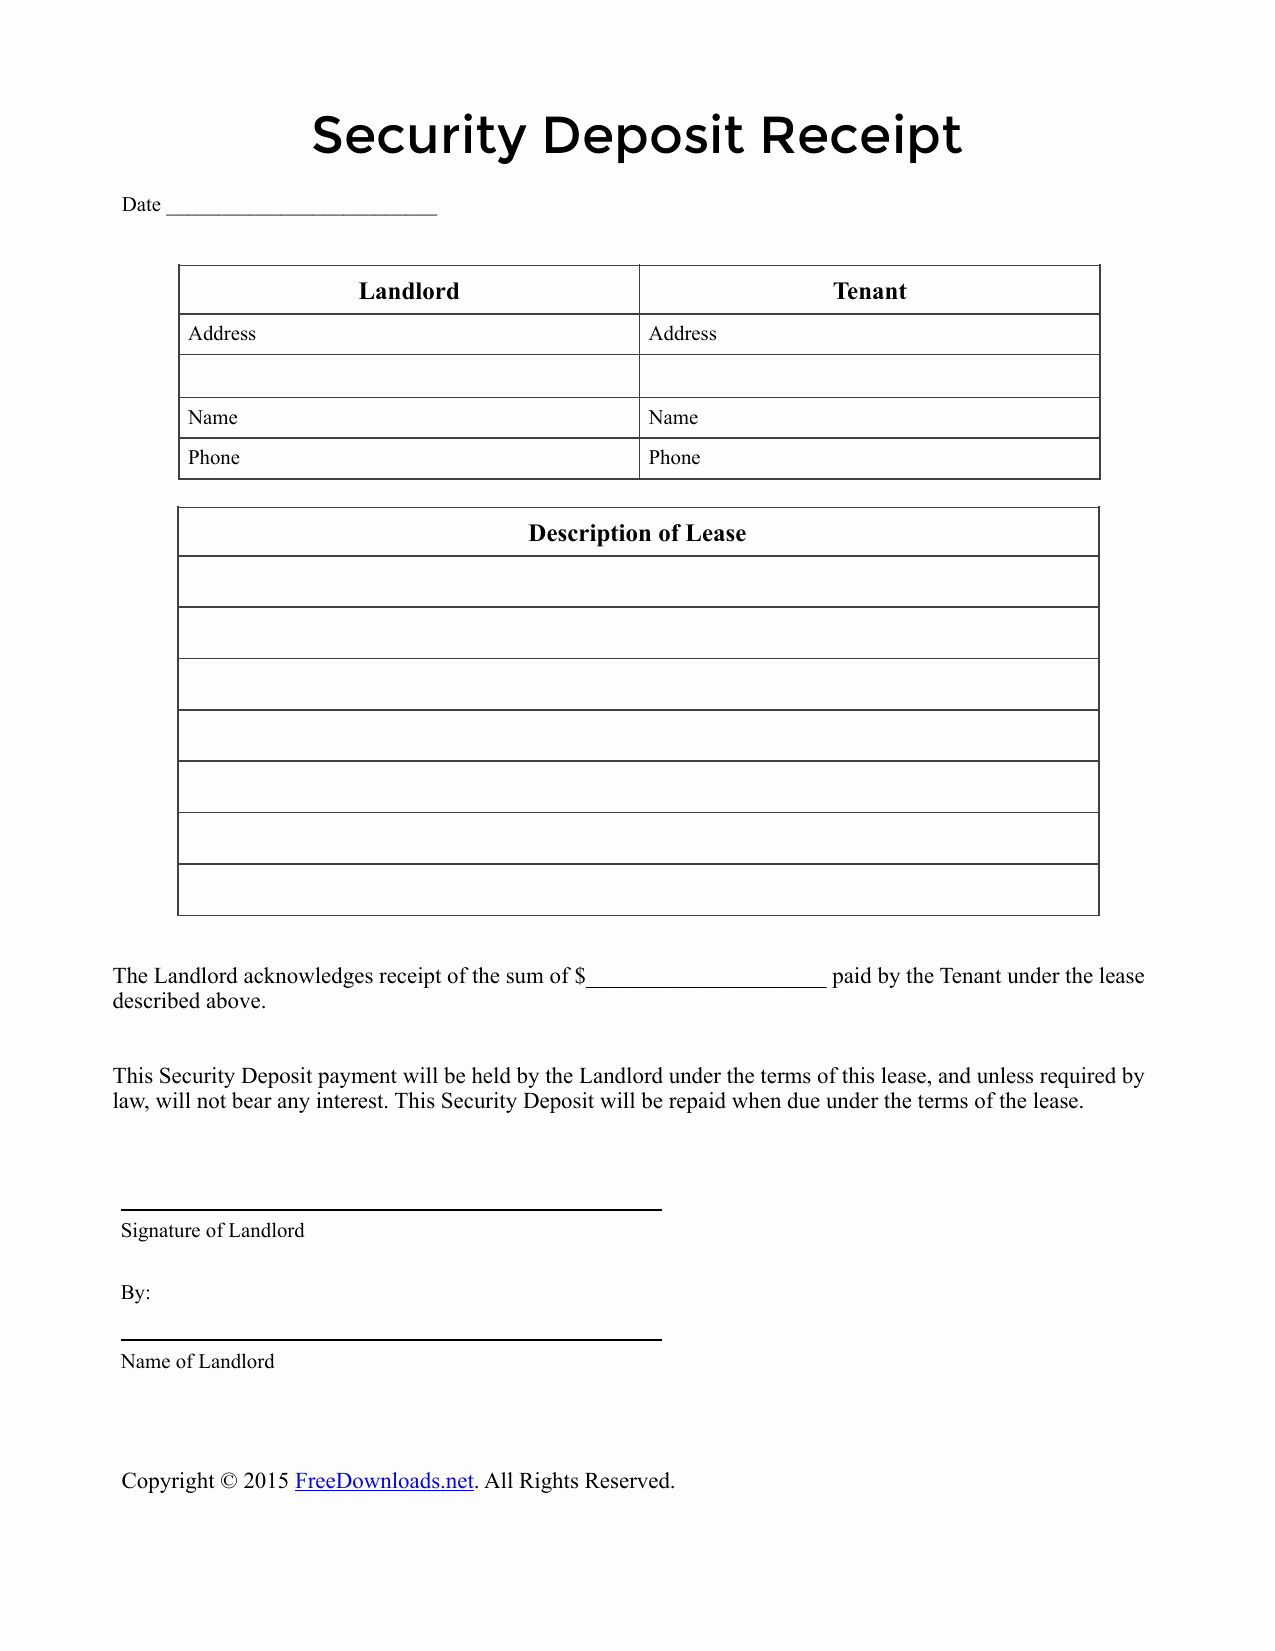 Security Deposit Letter format Unique Download Security Deposit Receipt Template Pdf